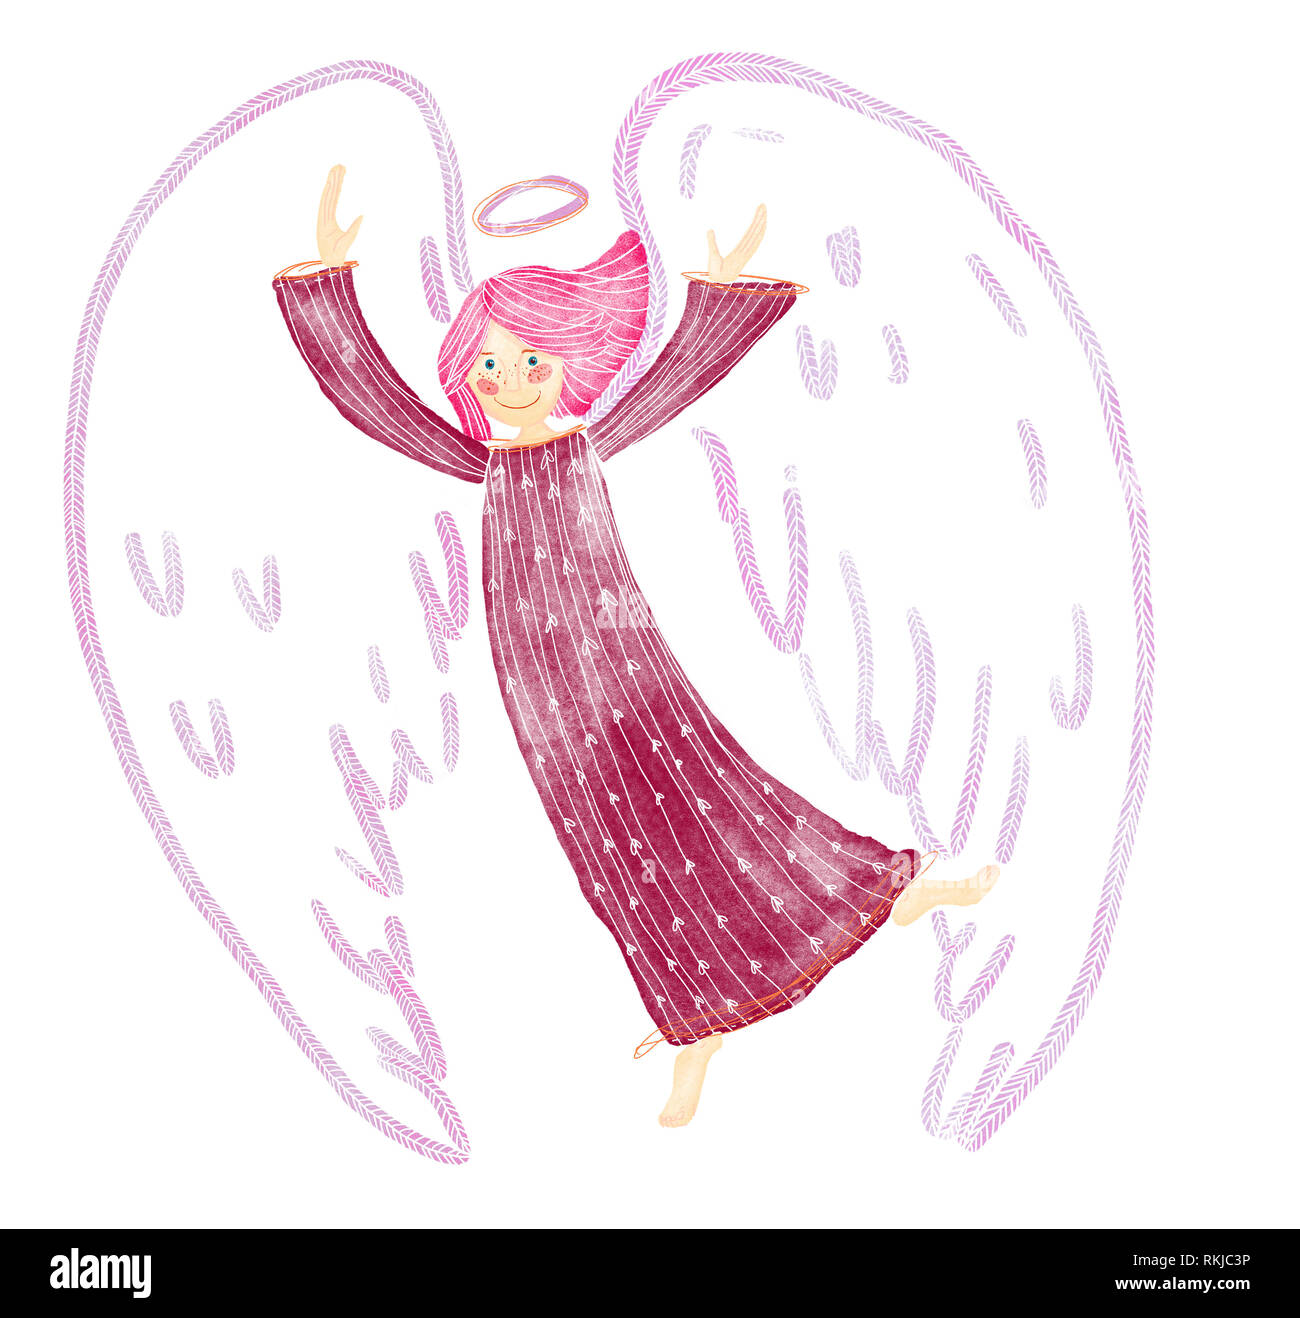 A digital watecolor illustration of happy, dancing guardian angel in shades of red, pink, claret color. Pink hair. - Stock Image